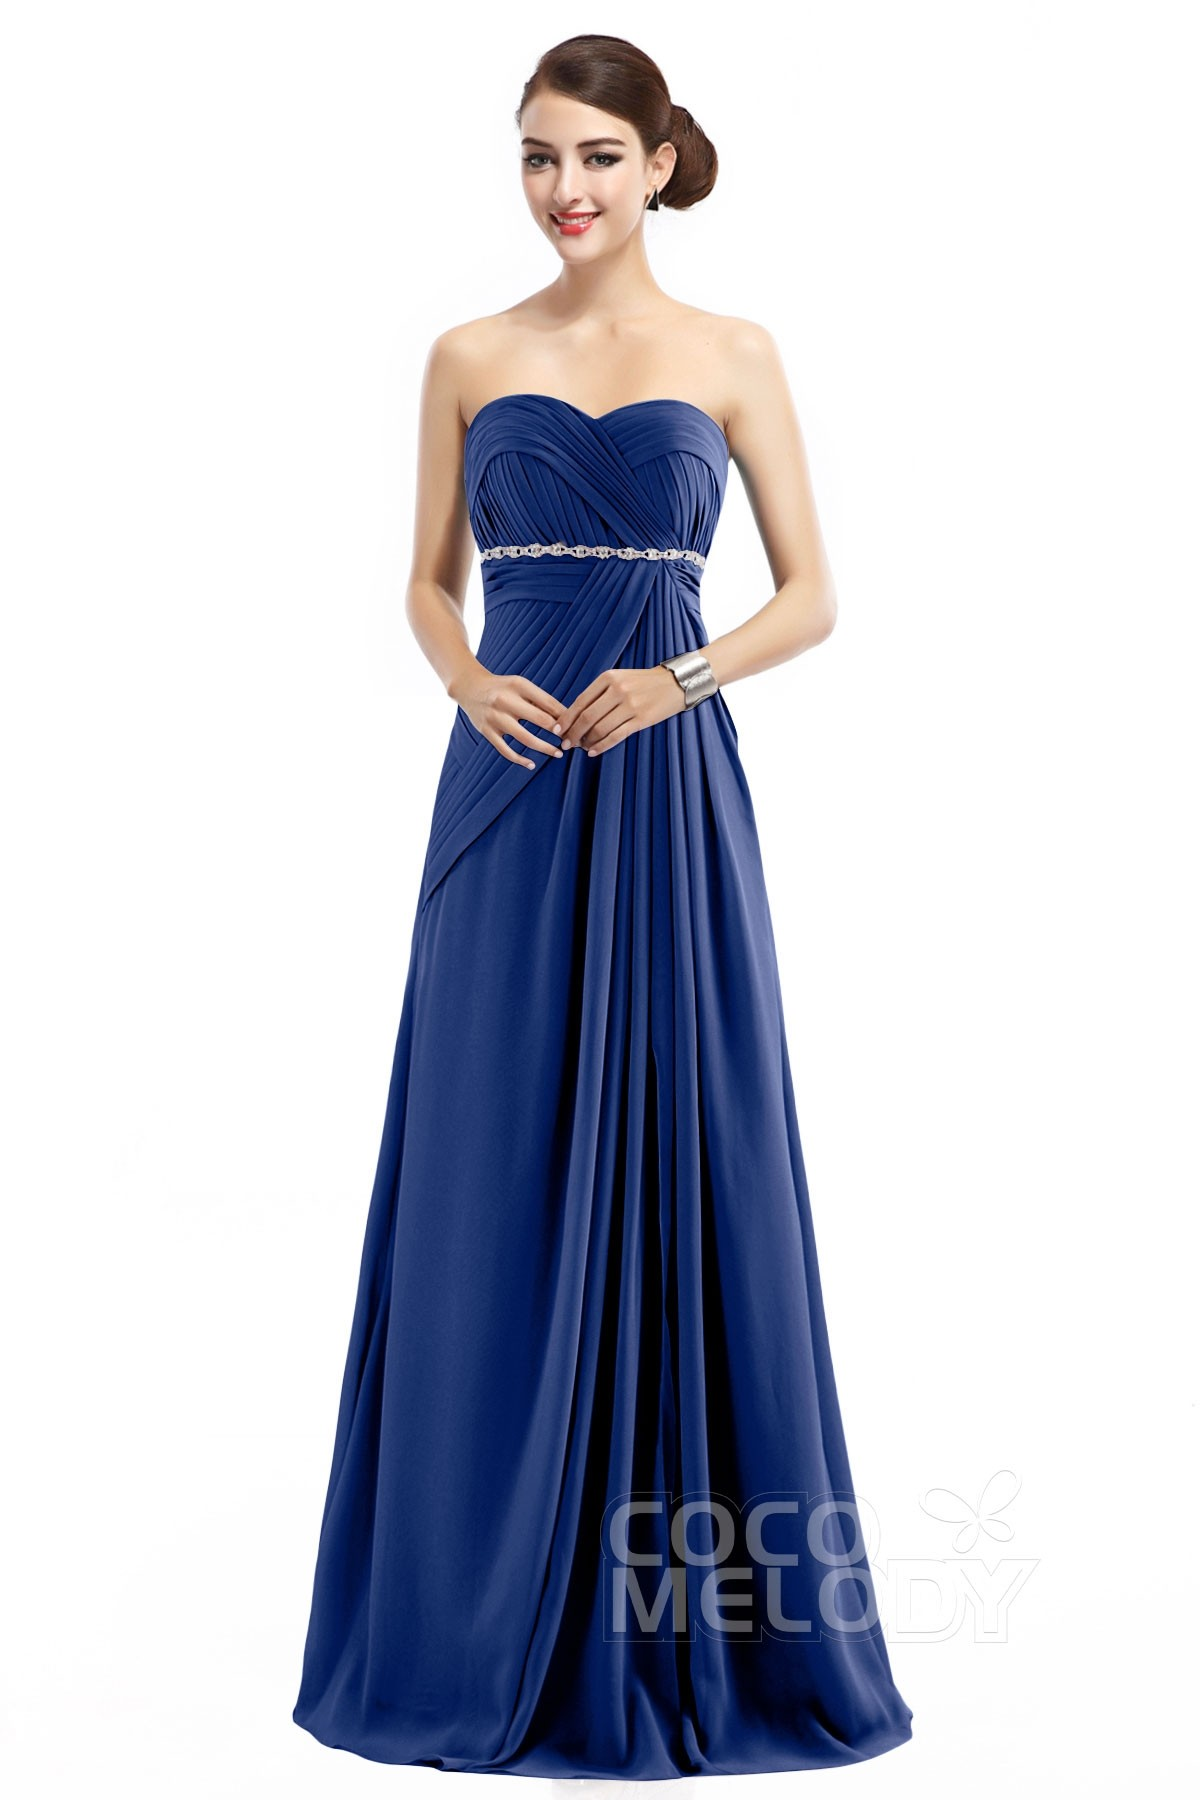 Latest Sheath-Column Sweetheart Natural Floor Length Chiffon Sleeveless  Zipper Bridesmaid Dress with Pleating COZF14022 9a2850934bf7